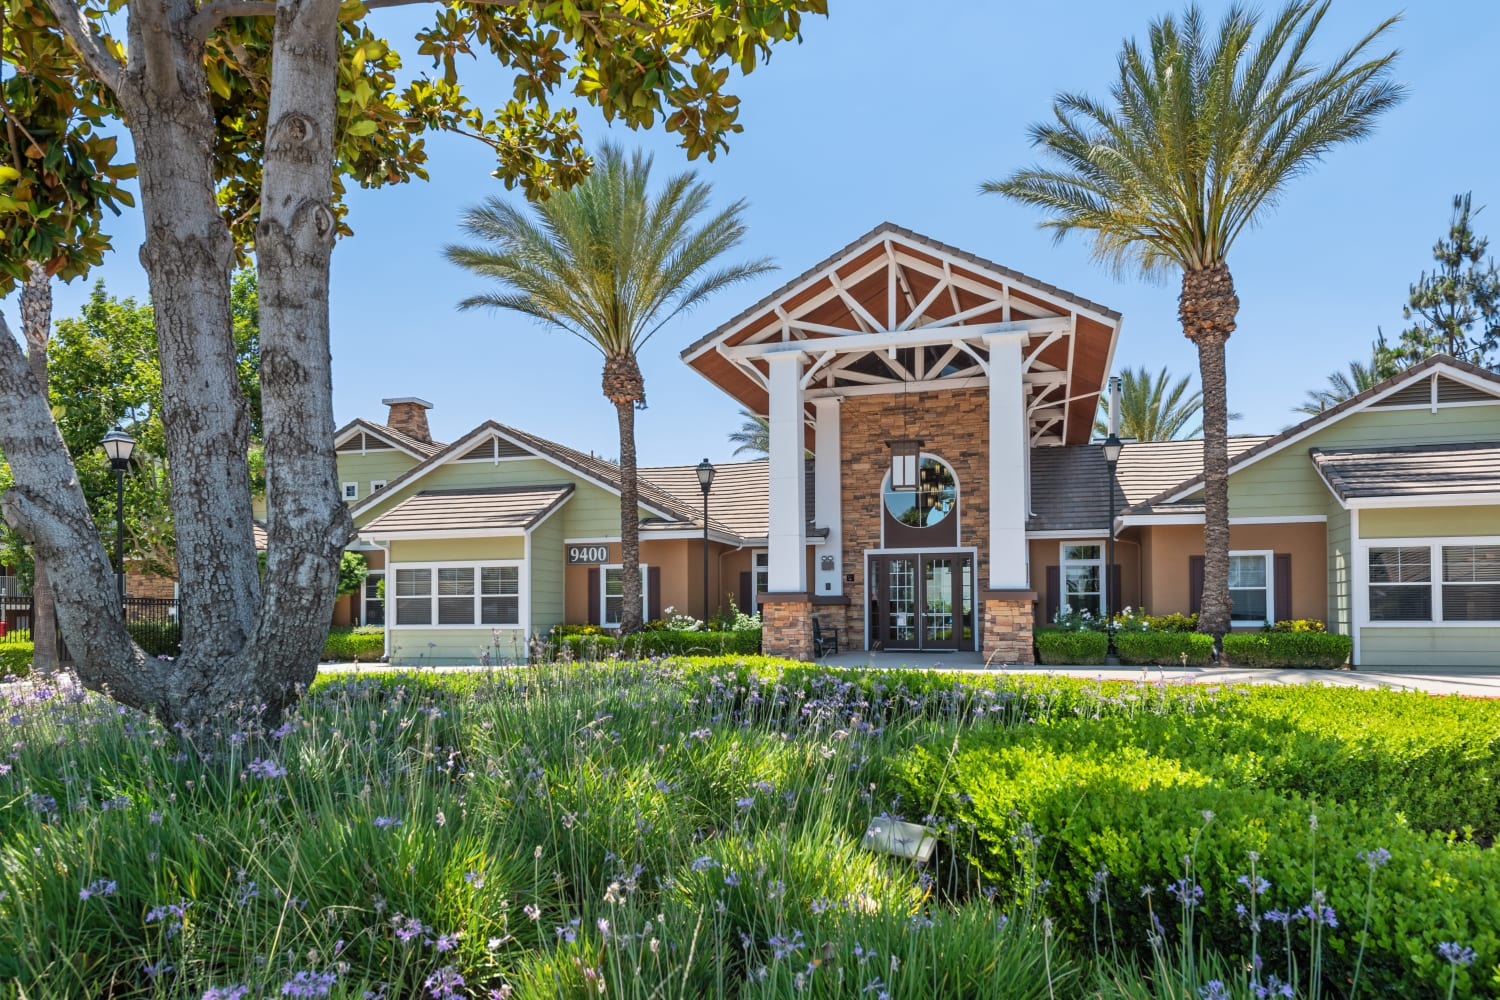 Entrance at The Village on 5th in Rancho Cucamonga, California